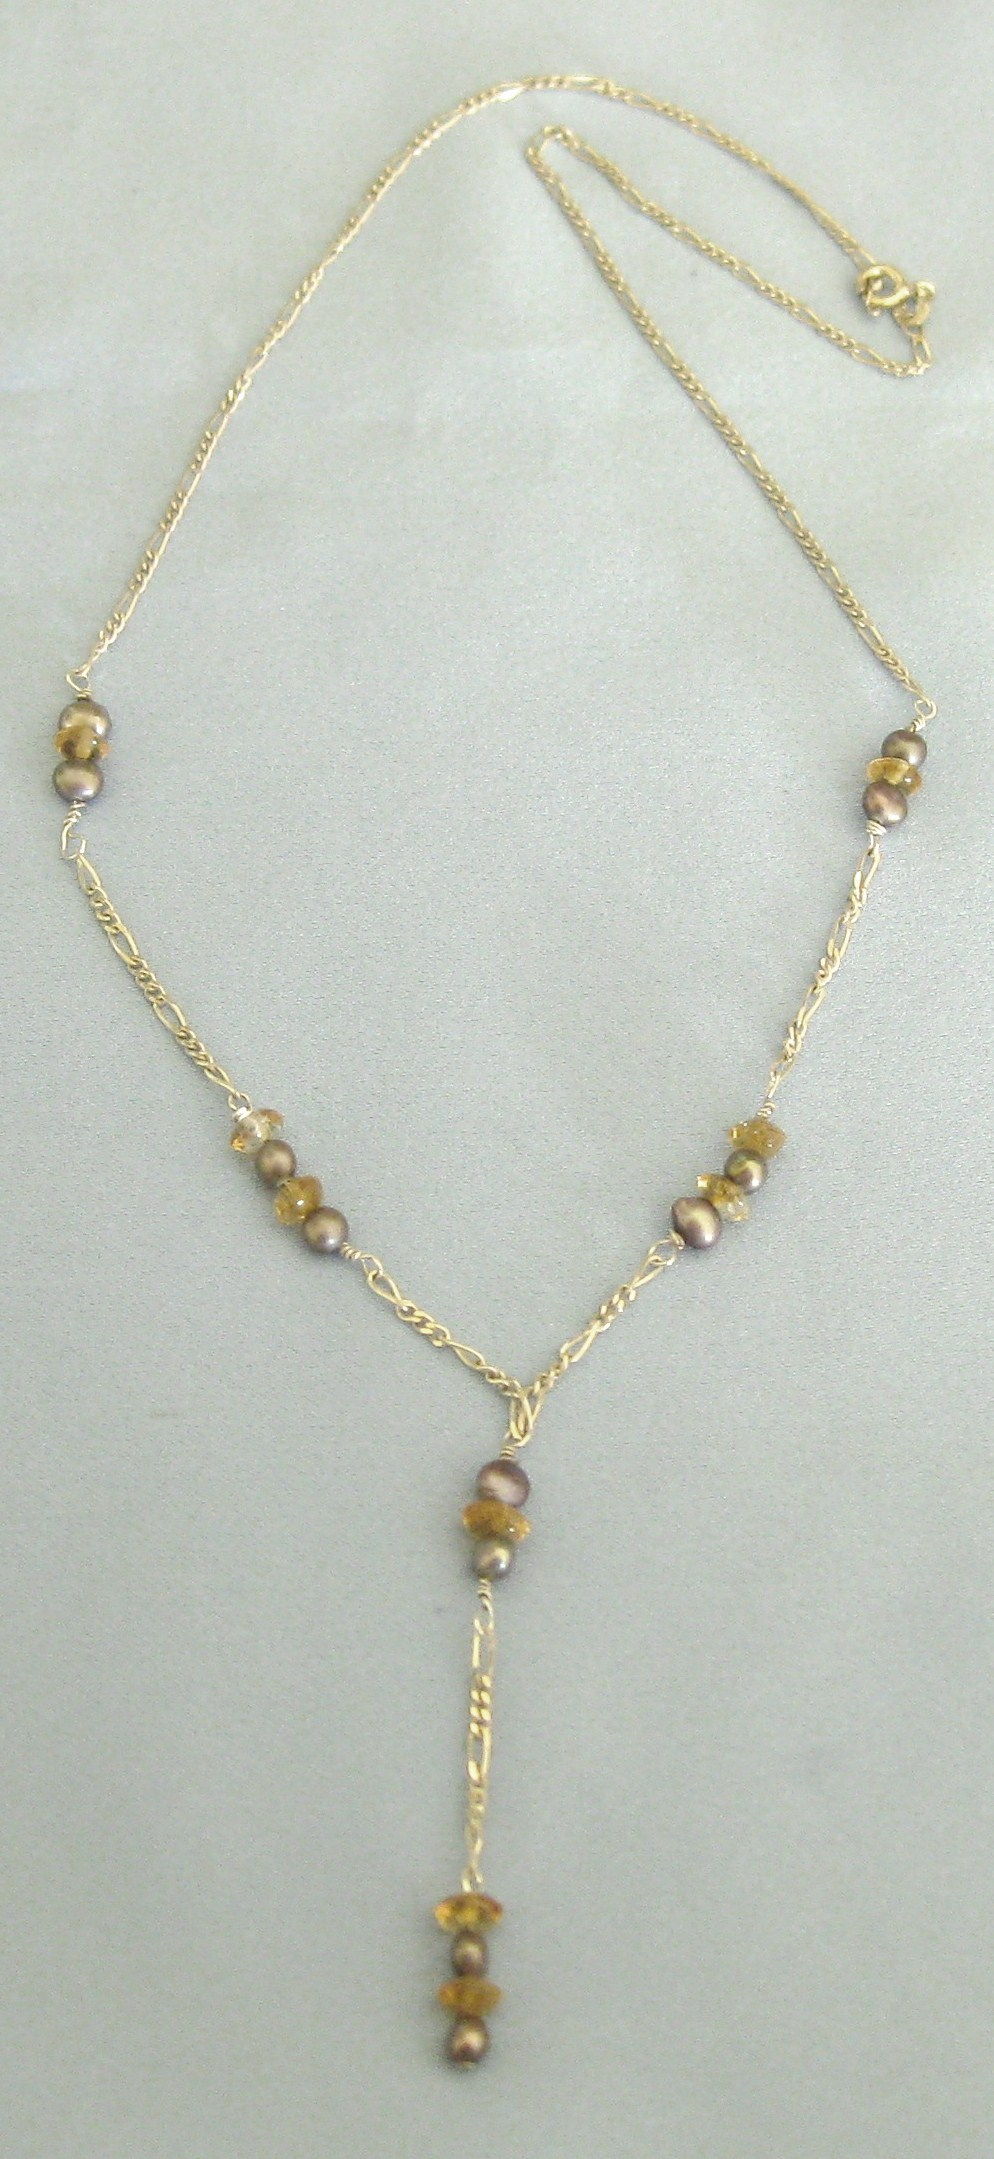 Attractive sterling silver necklace with citrine and for Jewelry making classes san diego